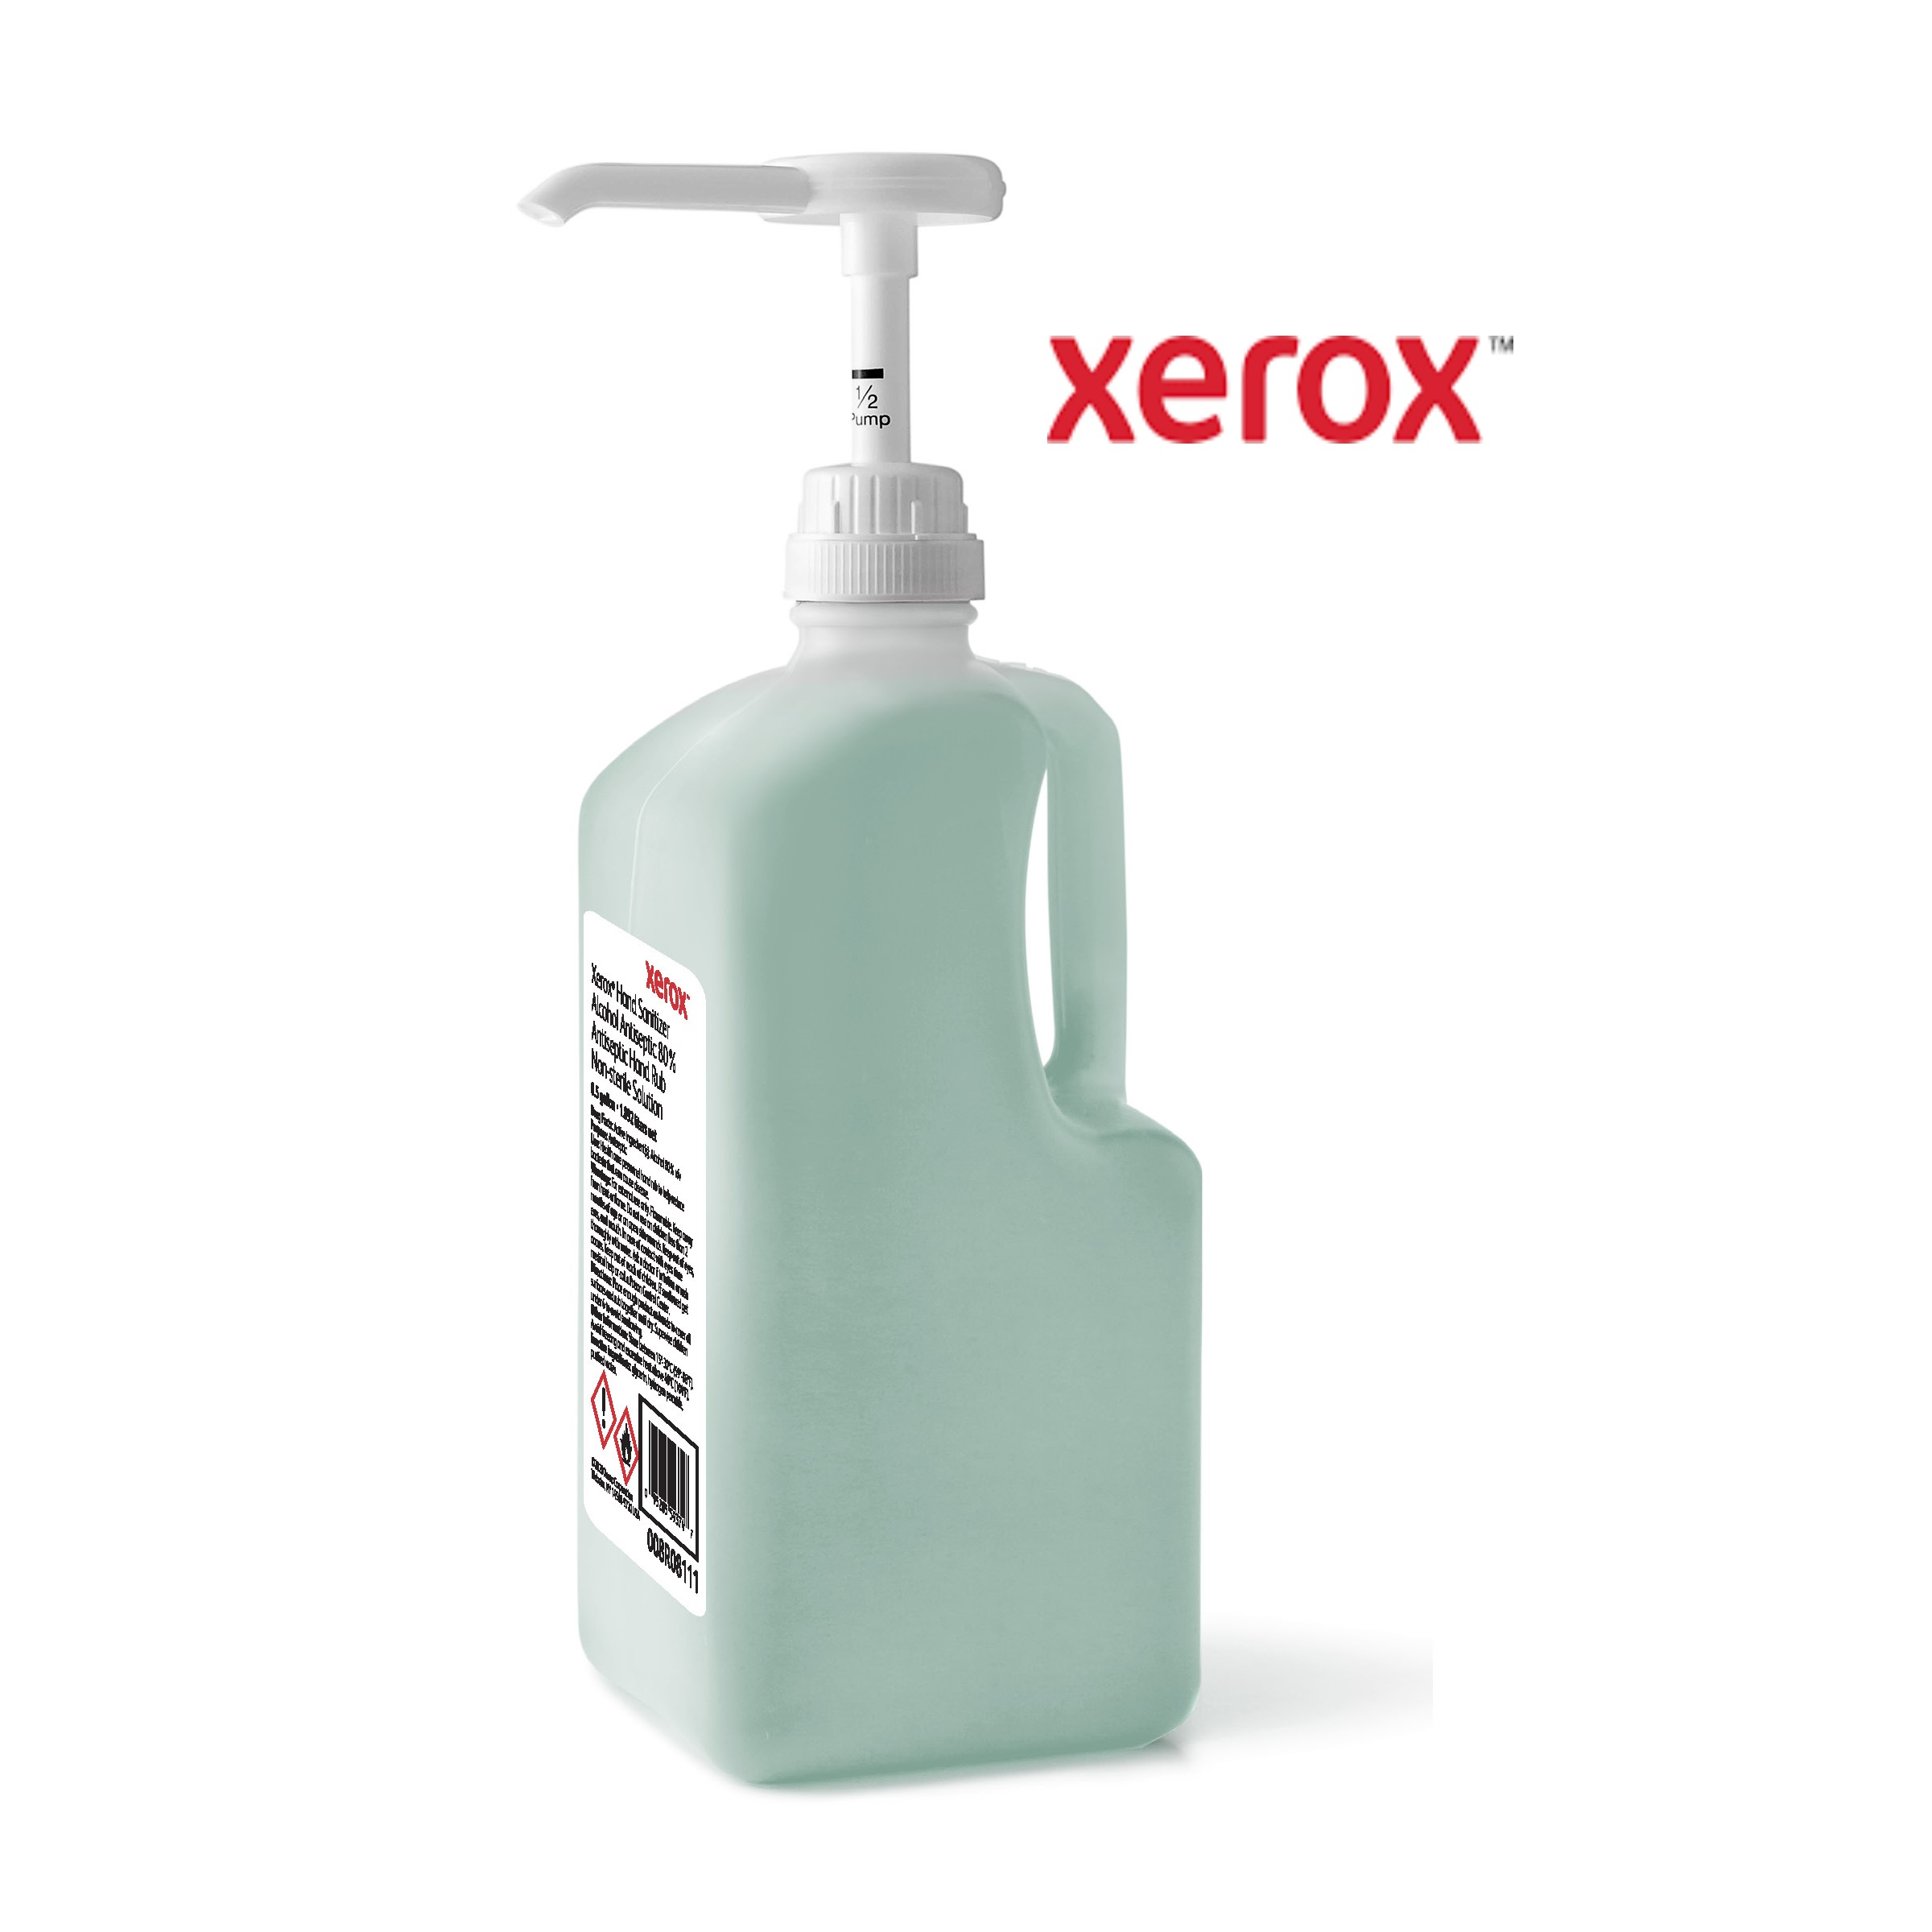 18-X008R08111E - Xerox Hand Sanitizer 0.5 gal Bottle Hospital-Grade Unscented